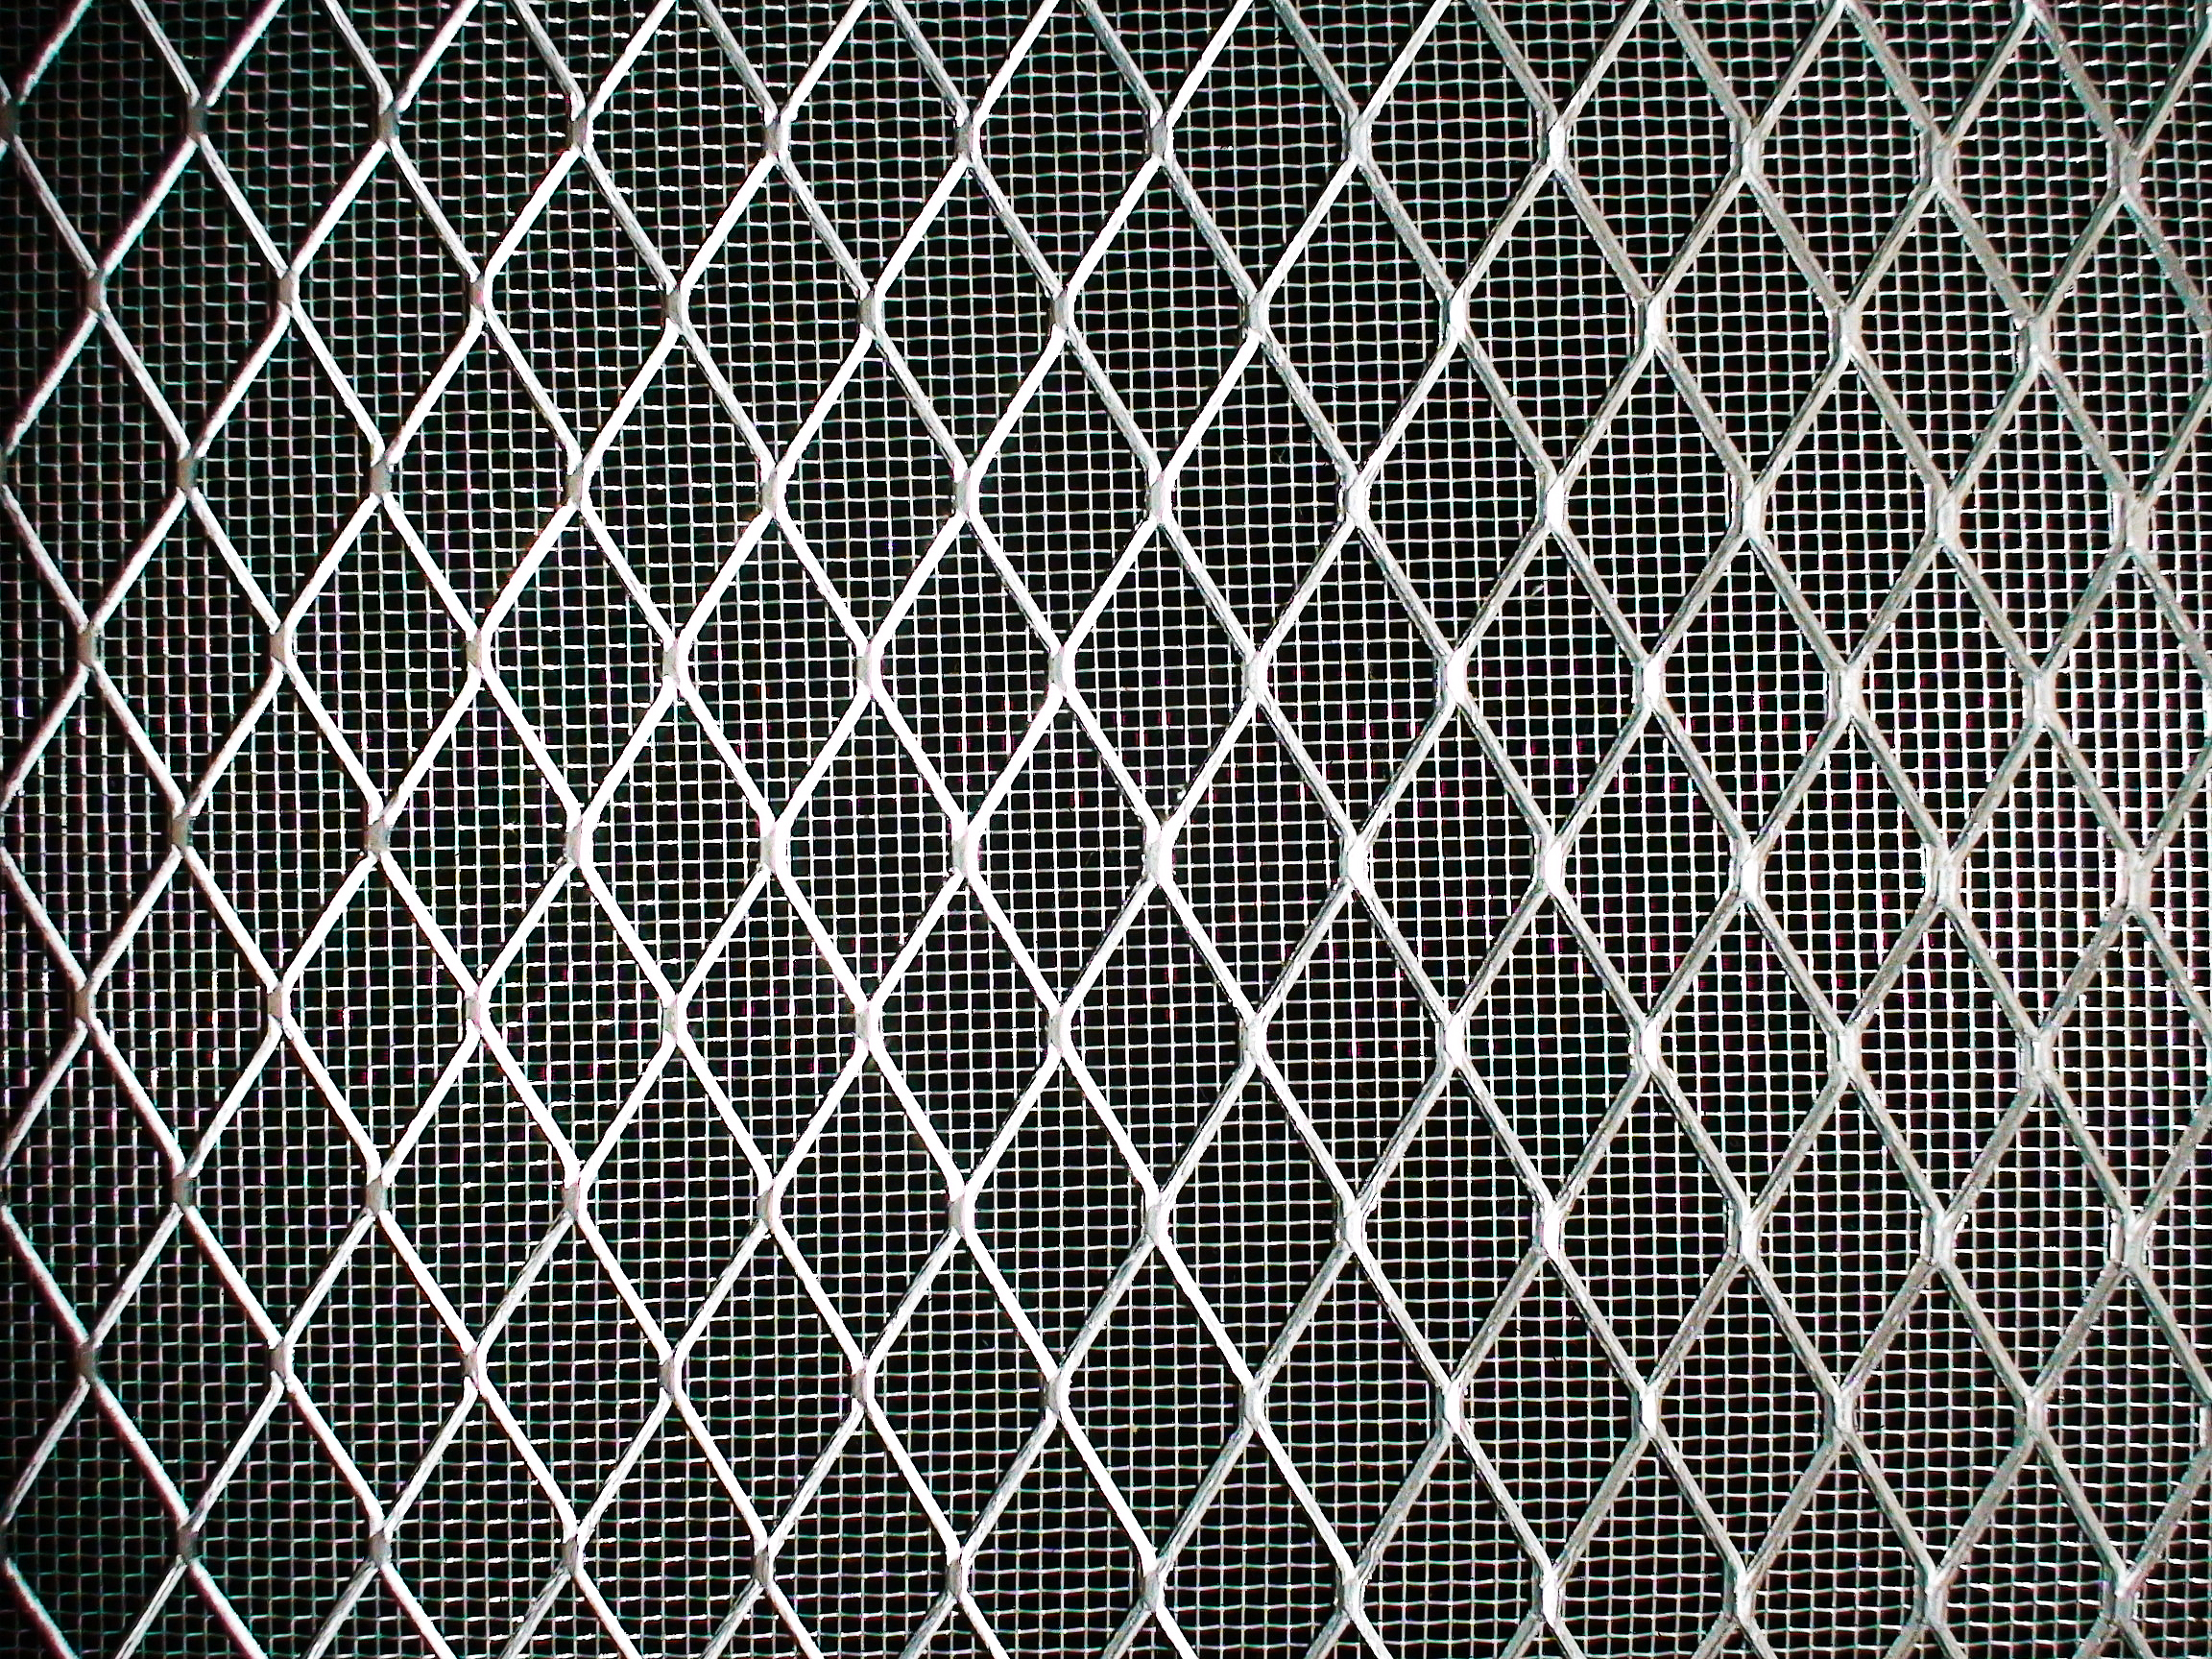 screen_texture_by_nesnejluap